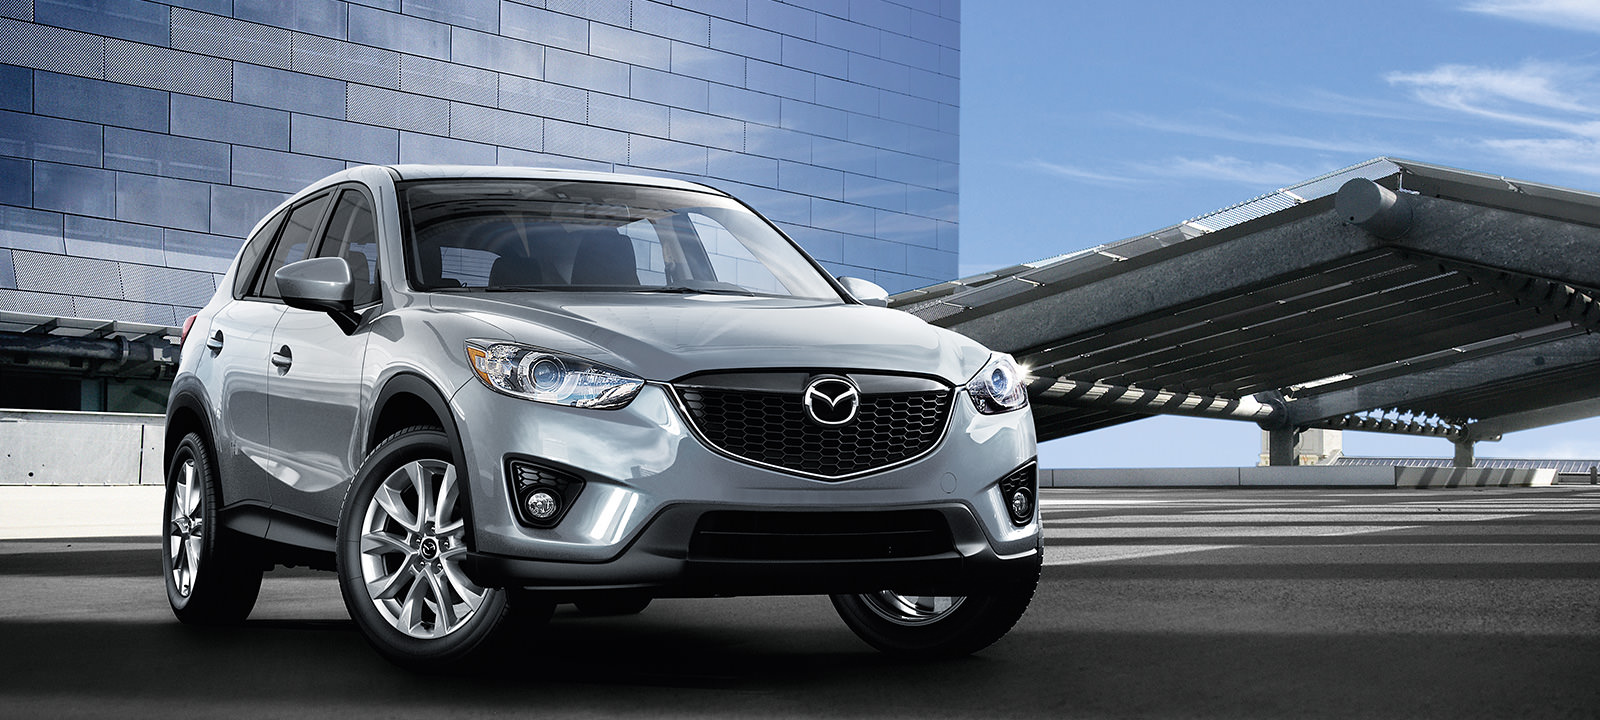 the 2015 mazda cx 5 receives a 5 star safety rating from the nhtsa. Black Bedroom Furniture Sets. Home Design Ideas